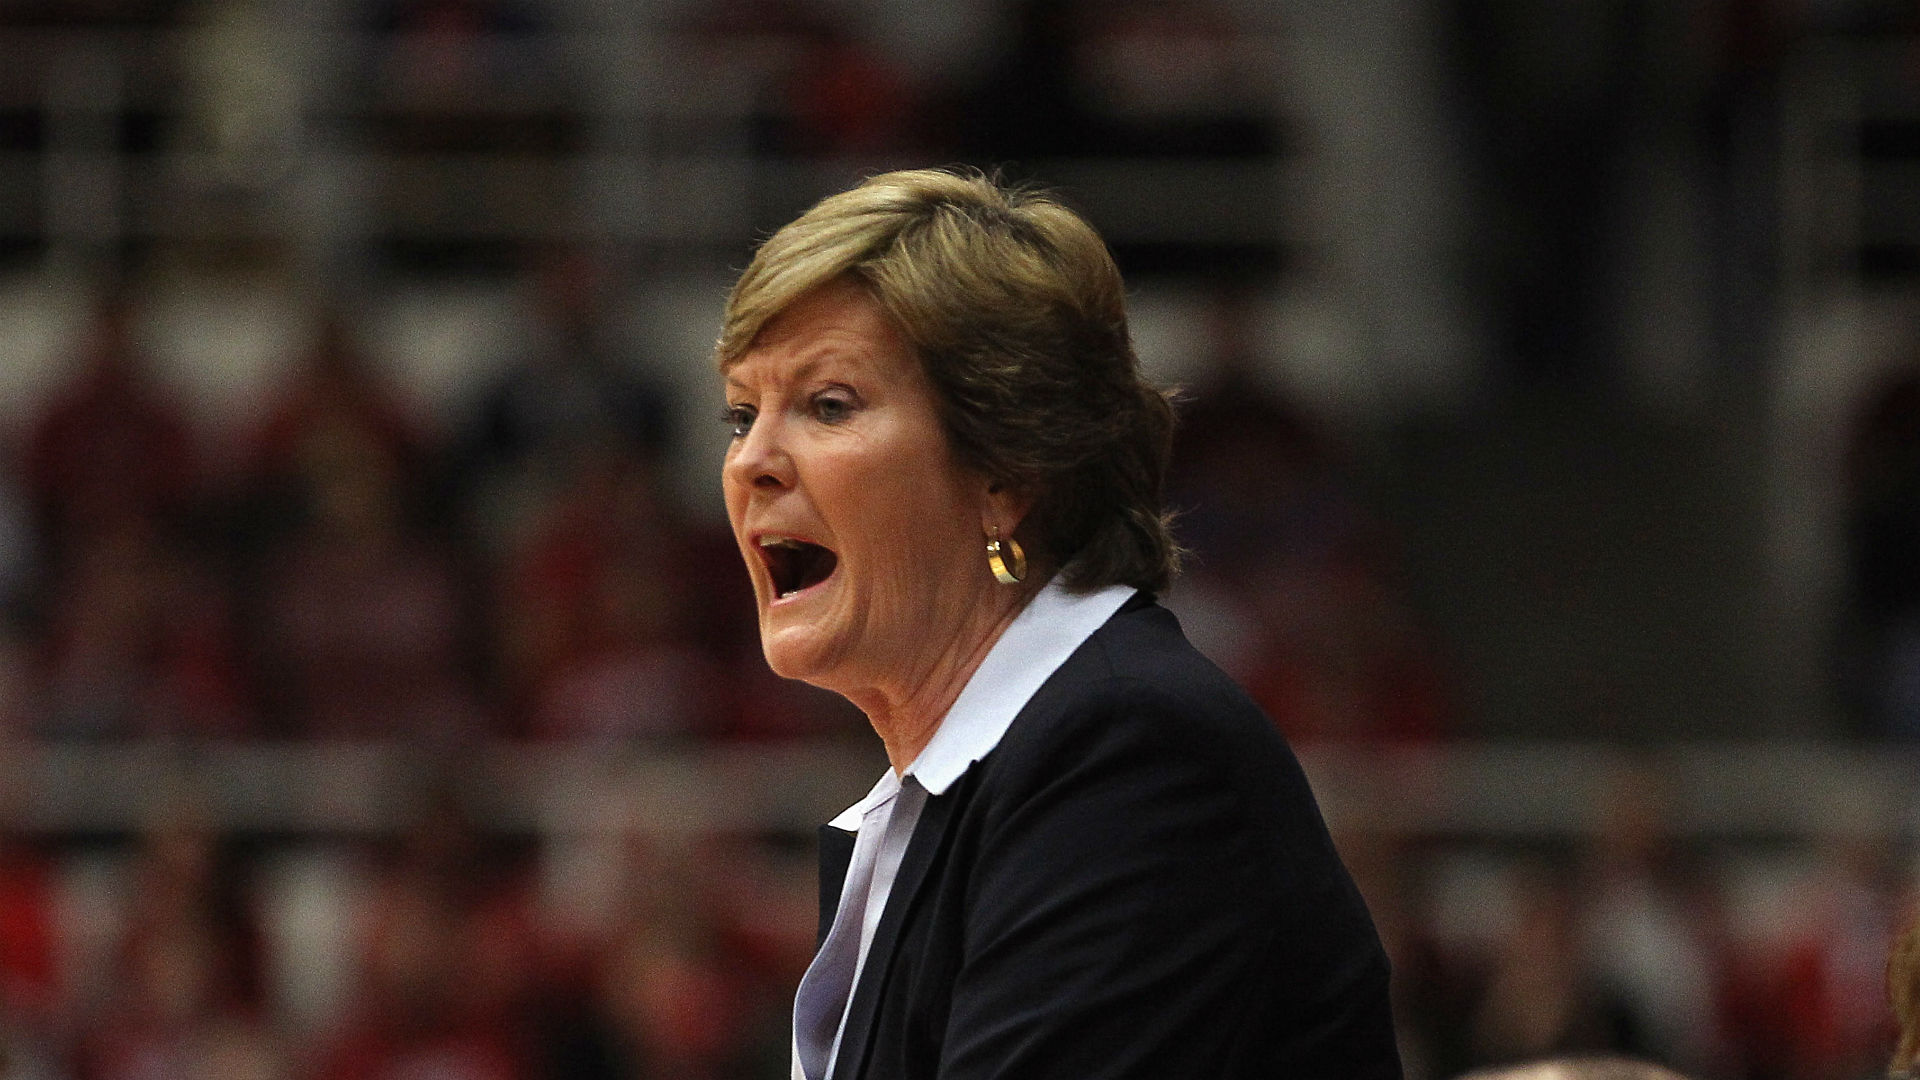 Family of legendary coach Pat Summitt asking for prayers